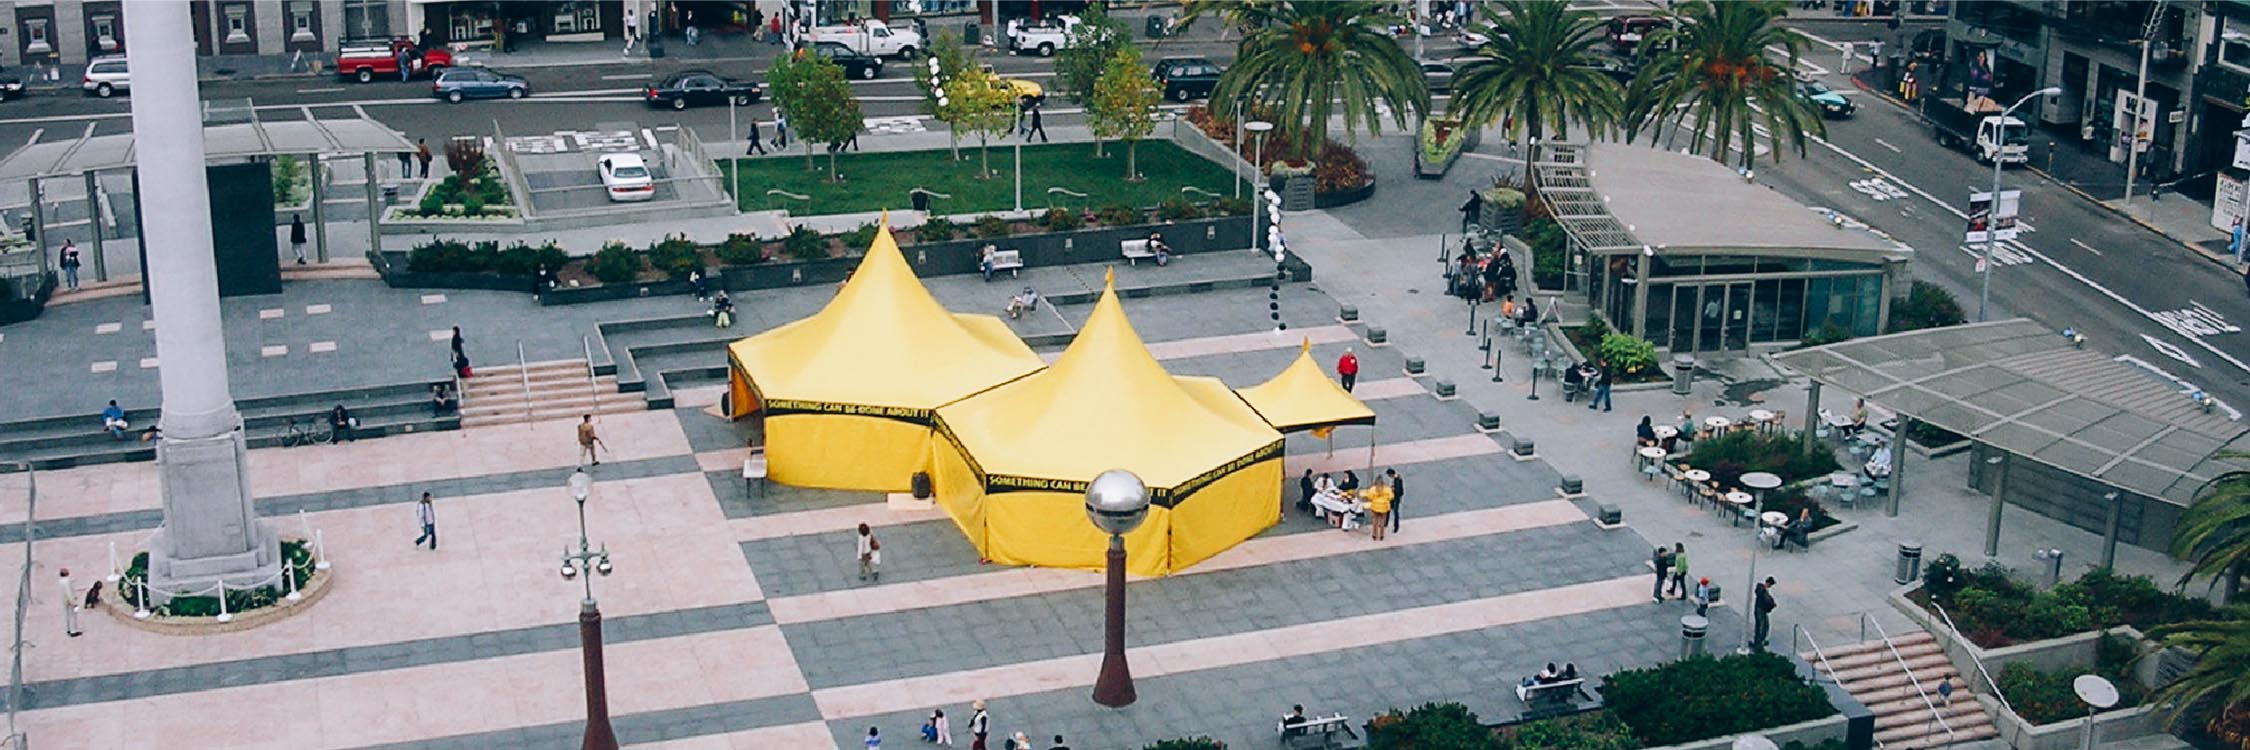 octagonal-scientology-tents-installed-in-union-square-park-in-san-francisco